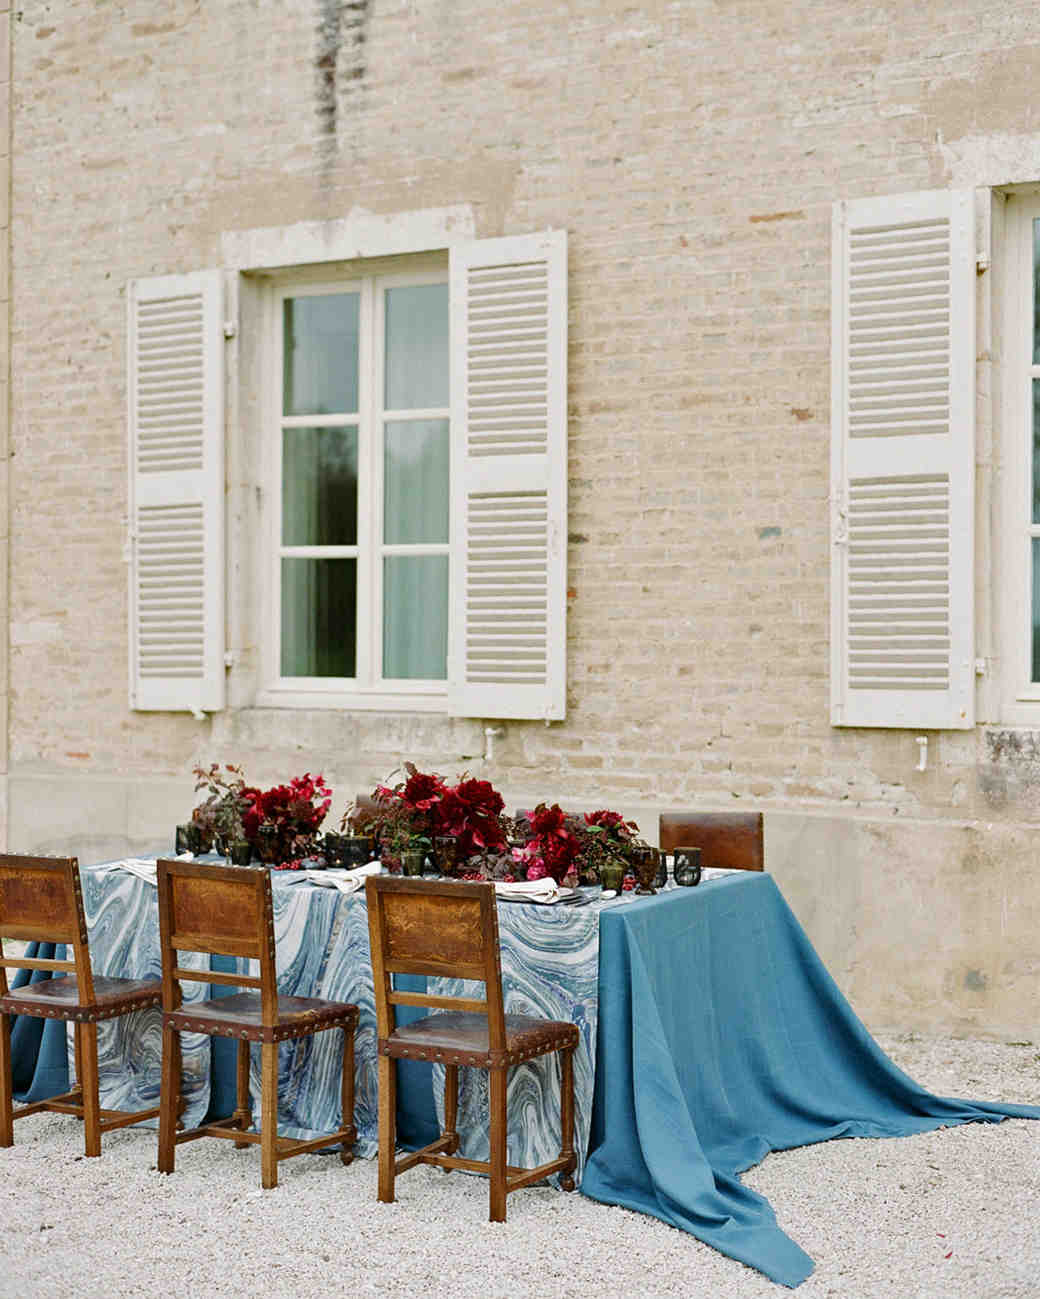 extended cerulean tablecloth marble pattern